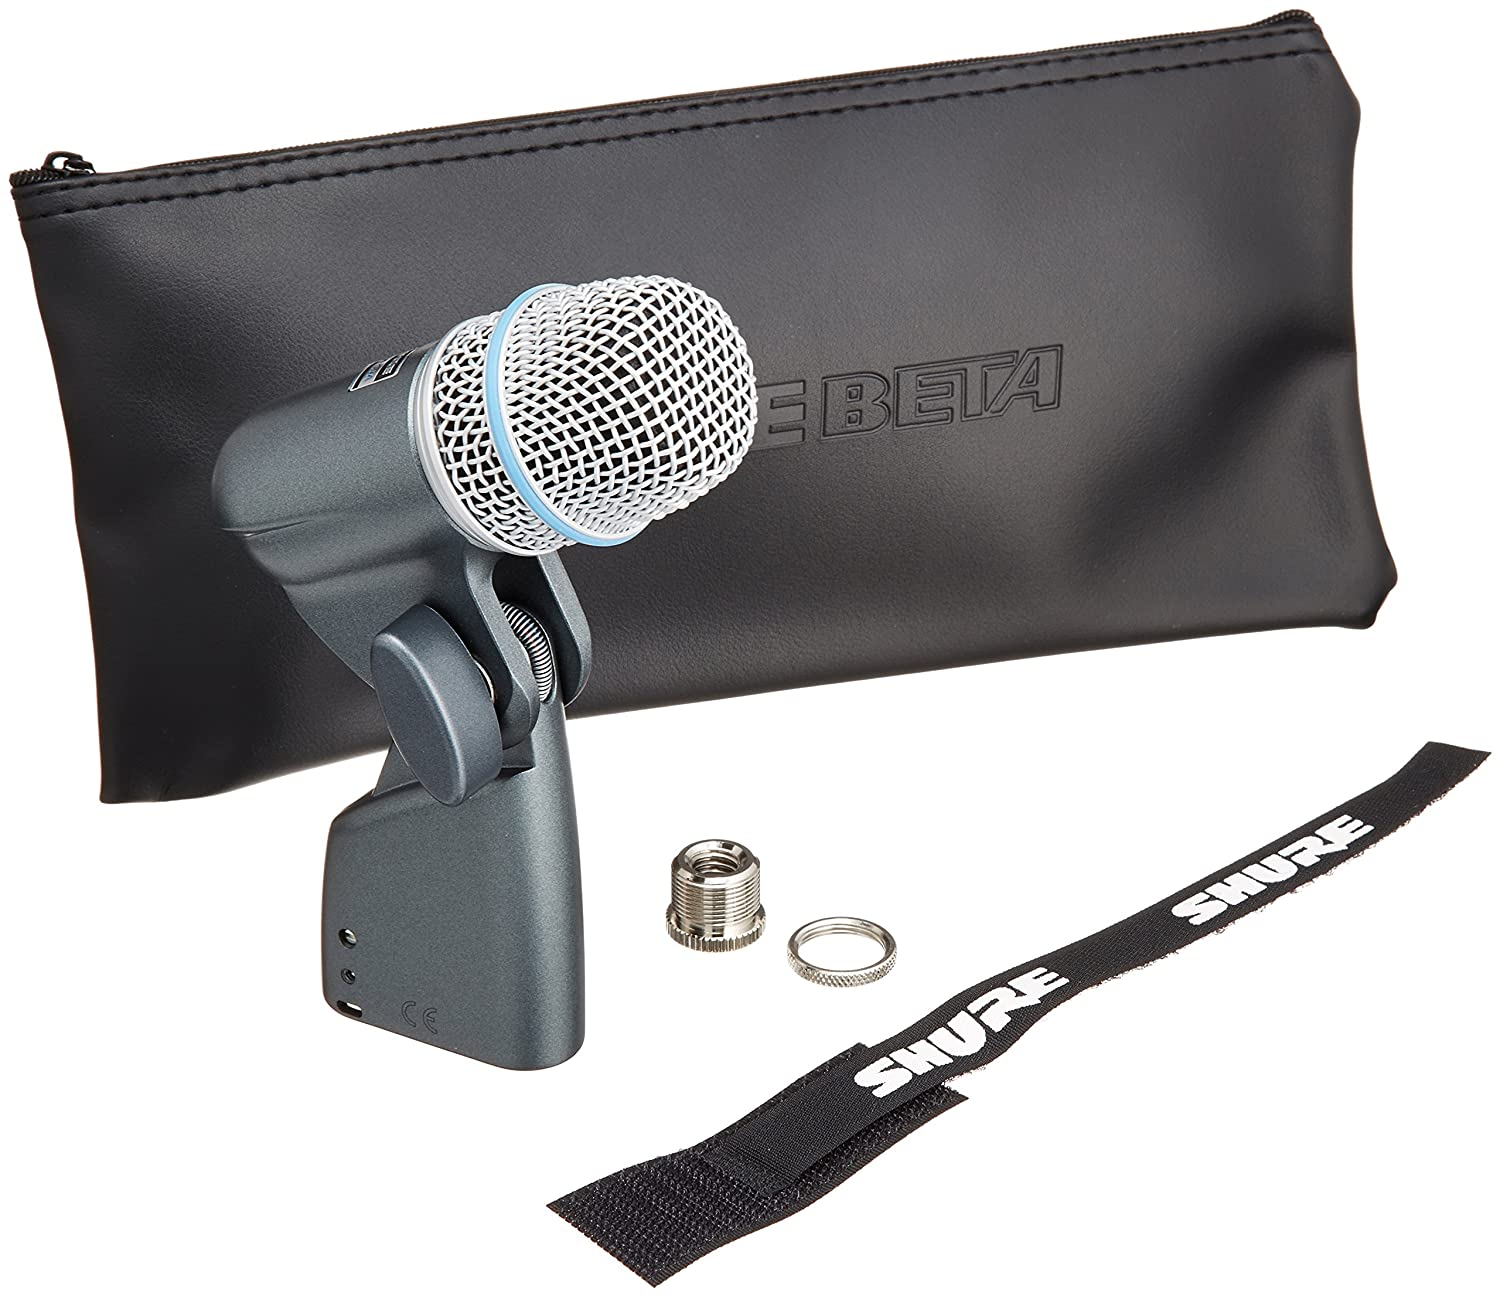 Shure BETA 56A Supercardioid Swivel-Mount Dynamic Microphone with High Output Neodymium Element for Vocal/Instrument Applications Shure Incorporated